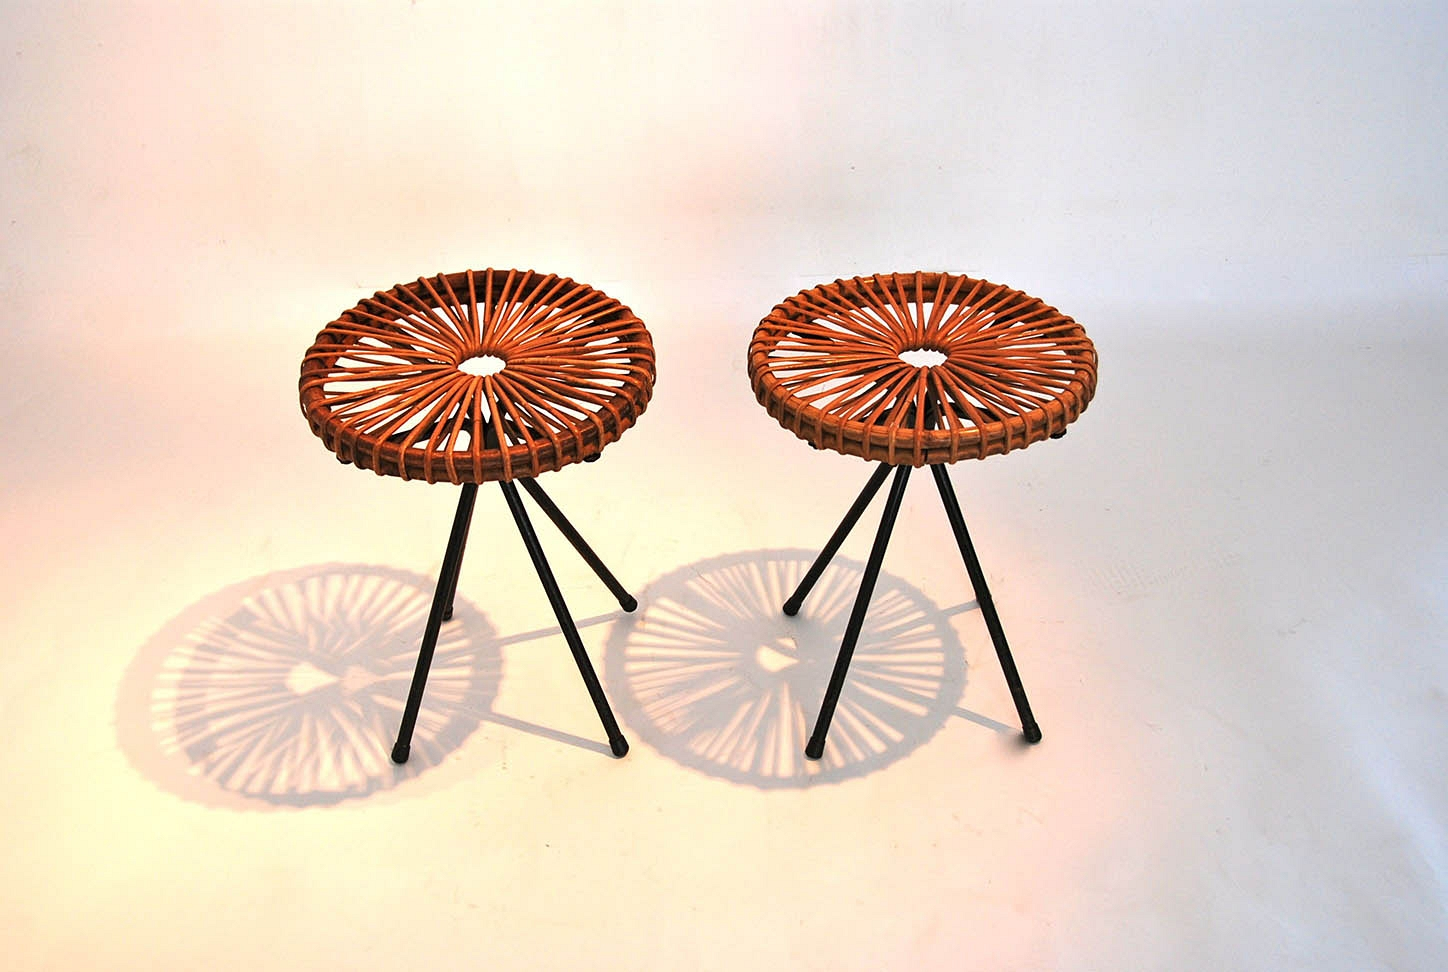 pair of Stools in whicker